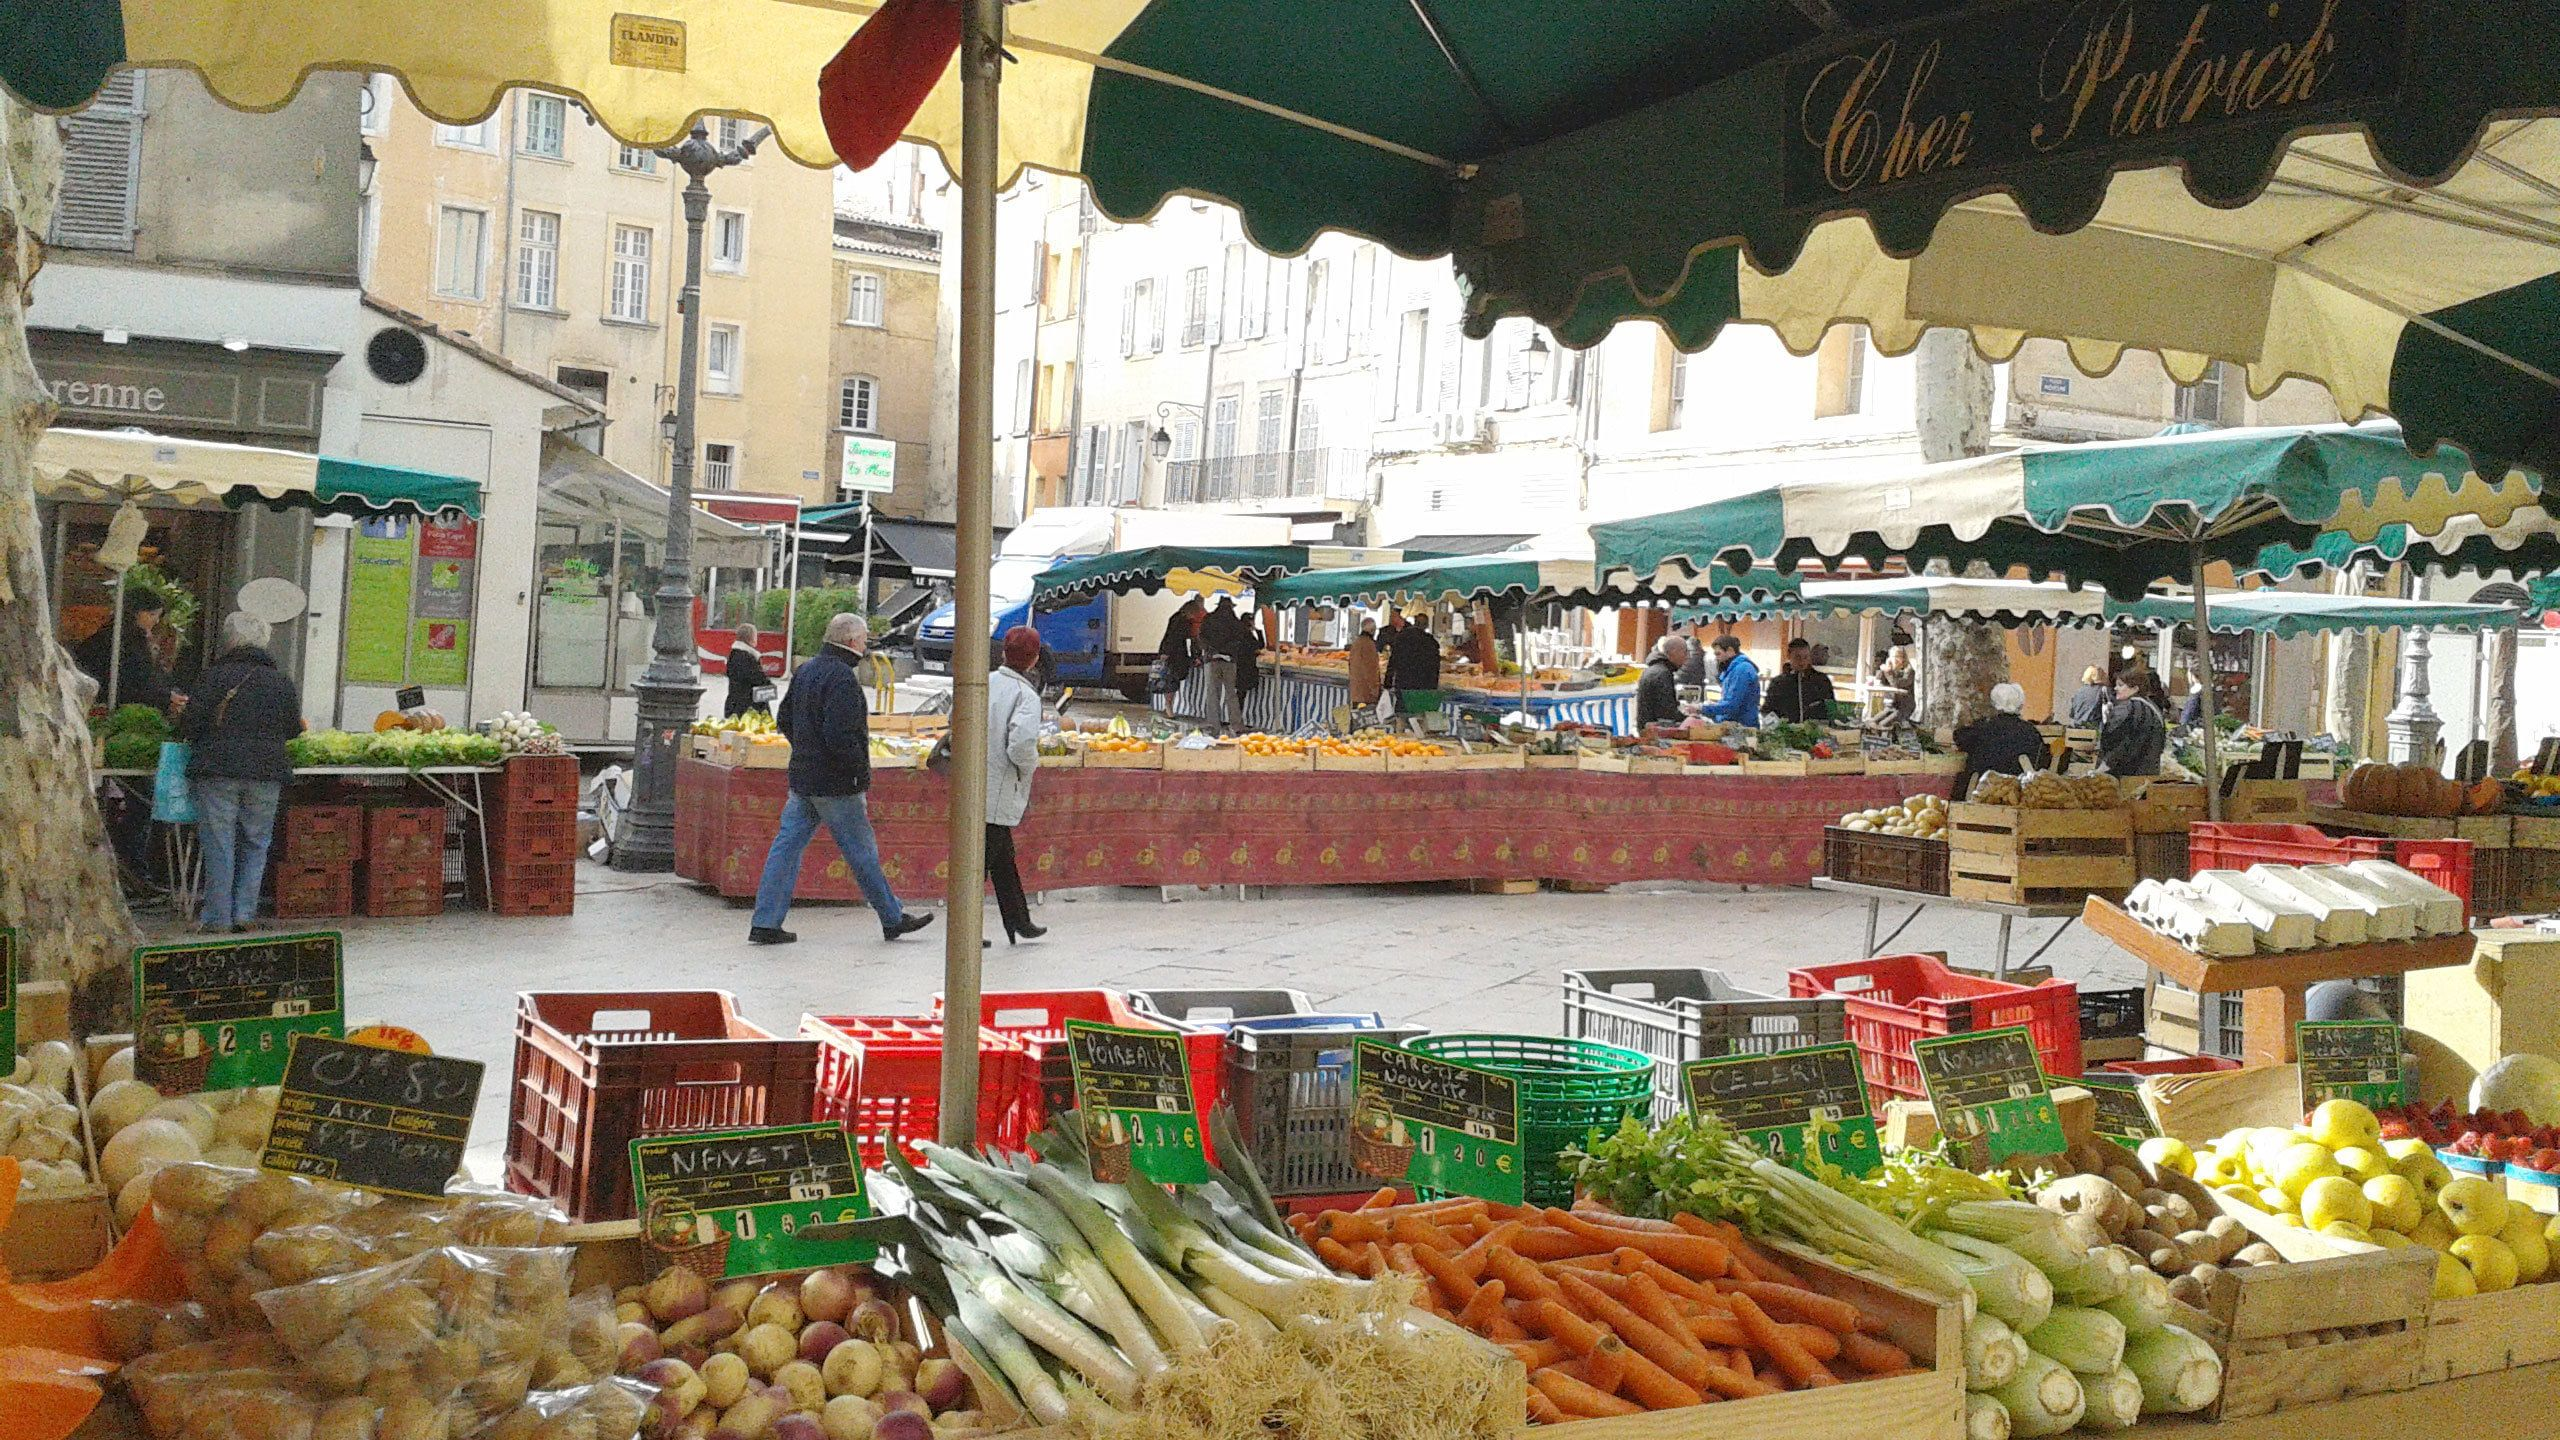 Night view of the street produce market in Aix-en-Provence